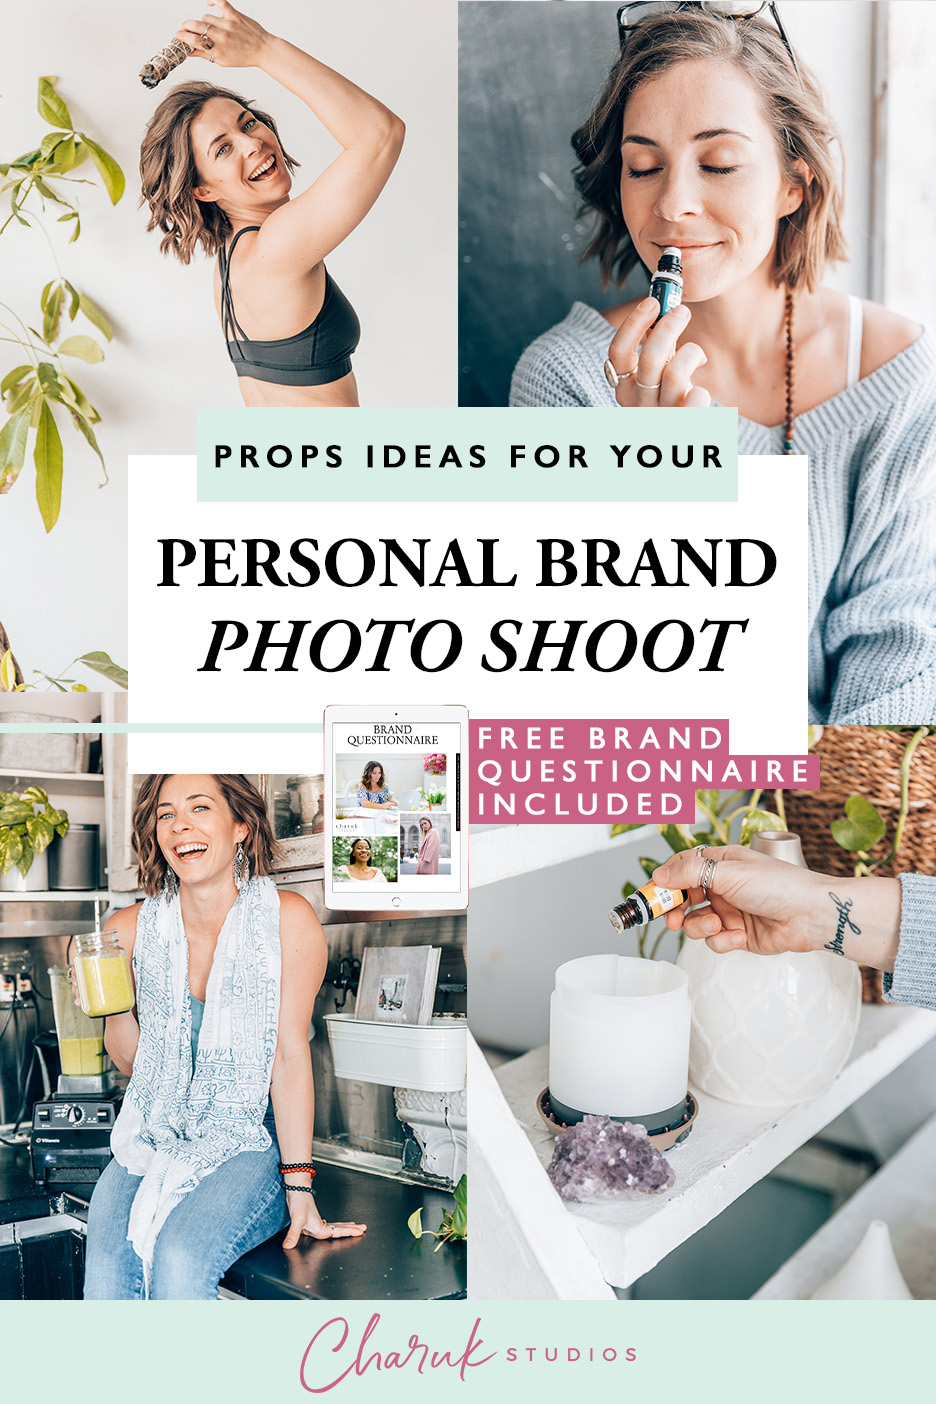 Prop Ideas for Your Personal Brand Photo Shoot by Charuk Studios